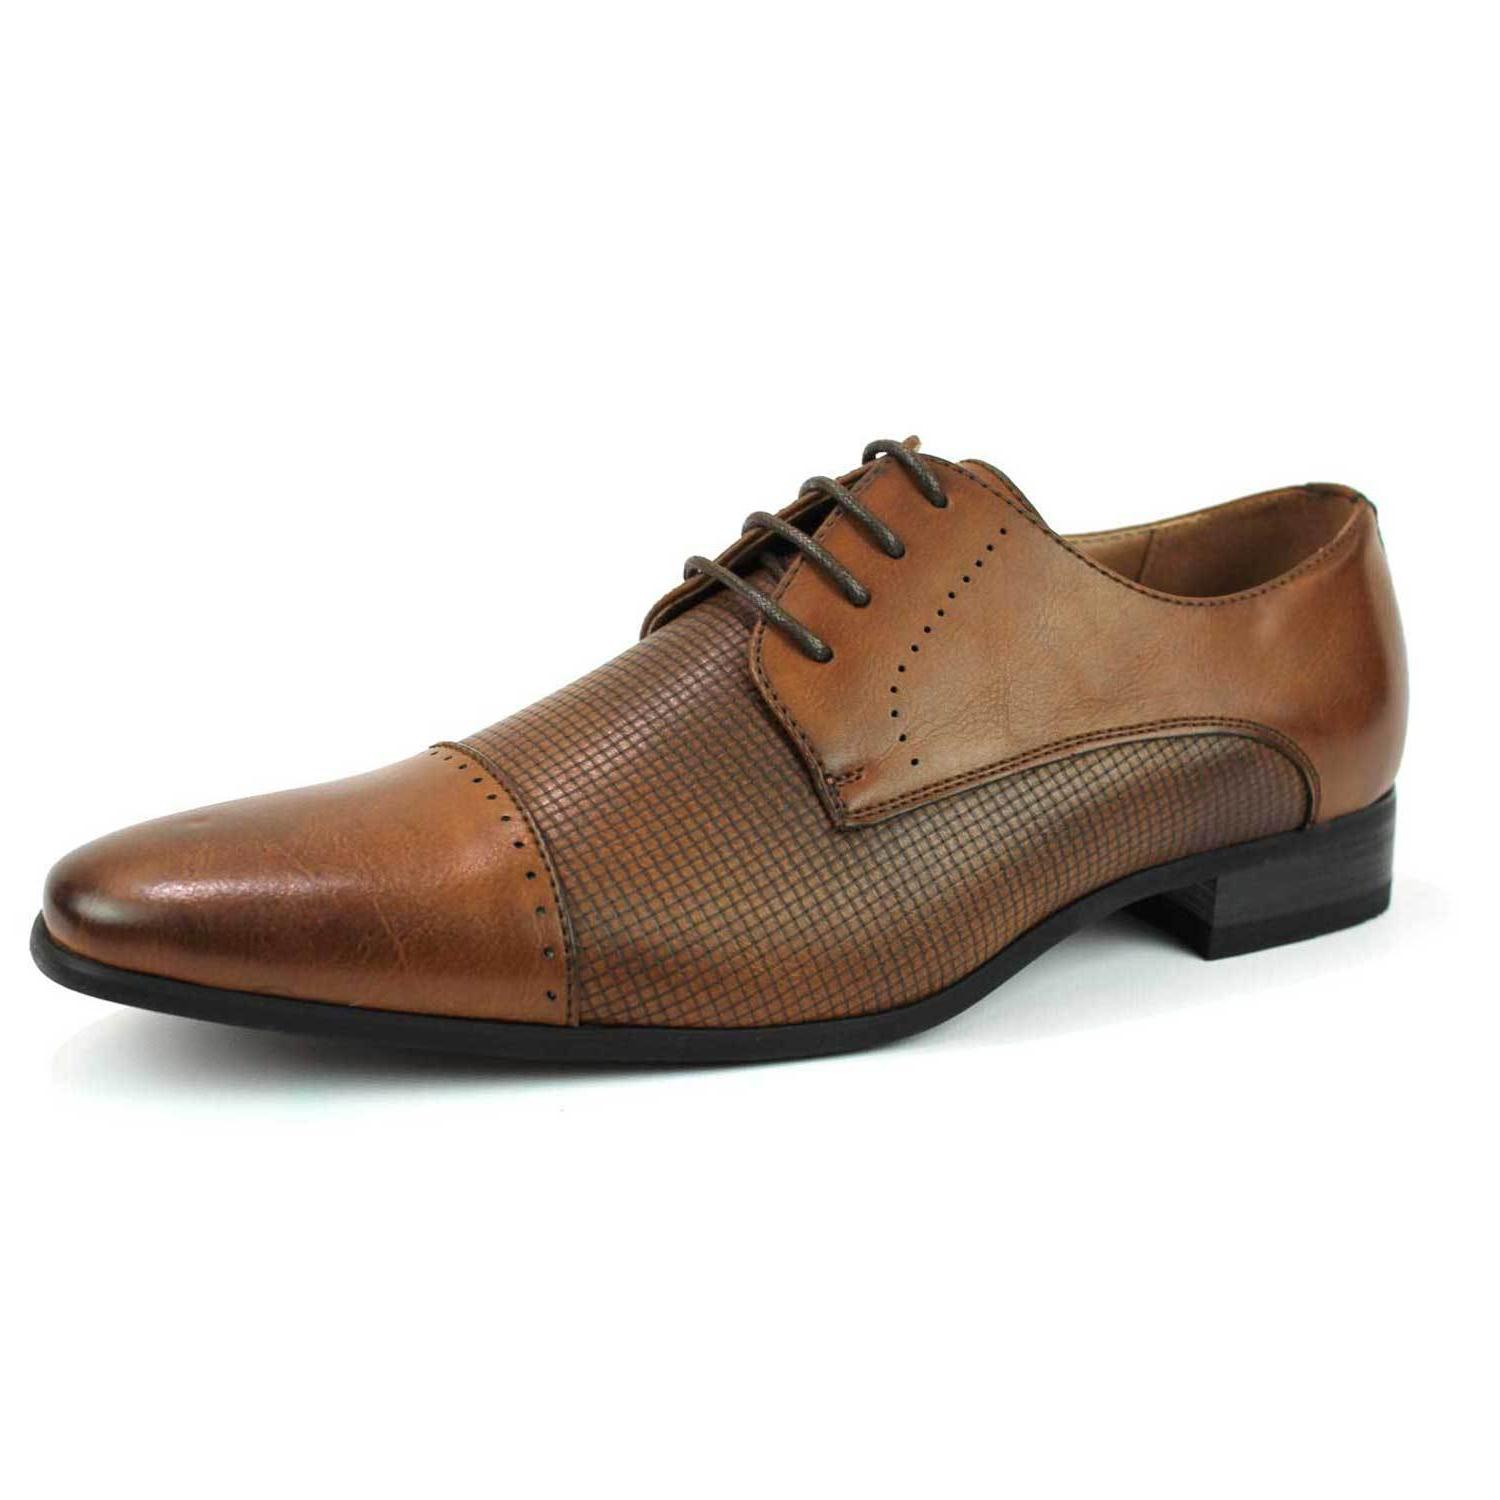 mens dress shoes cap toe lace up